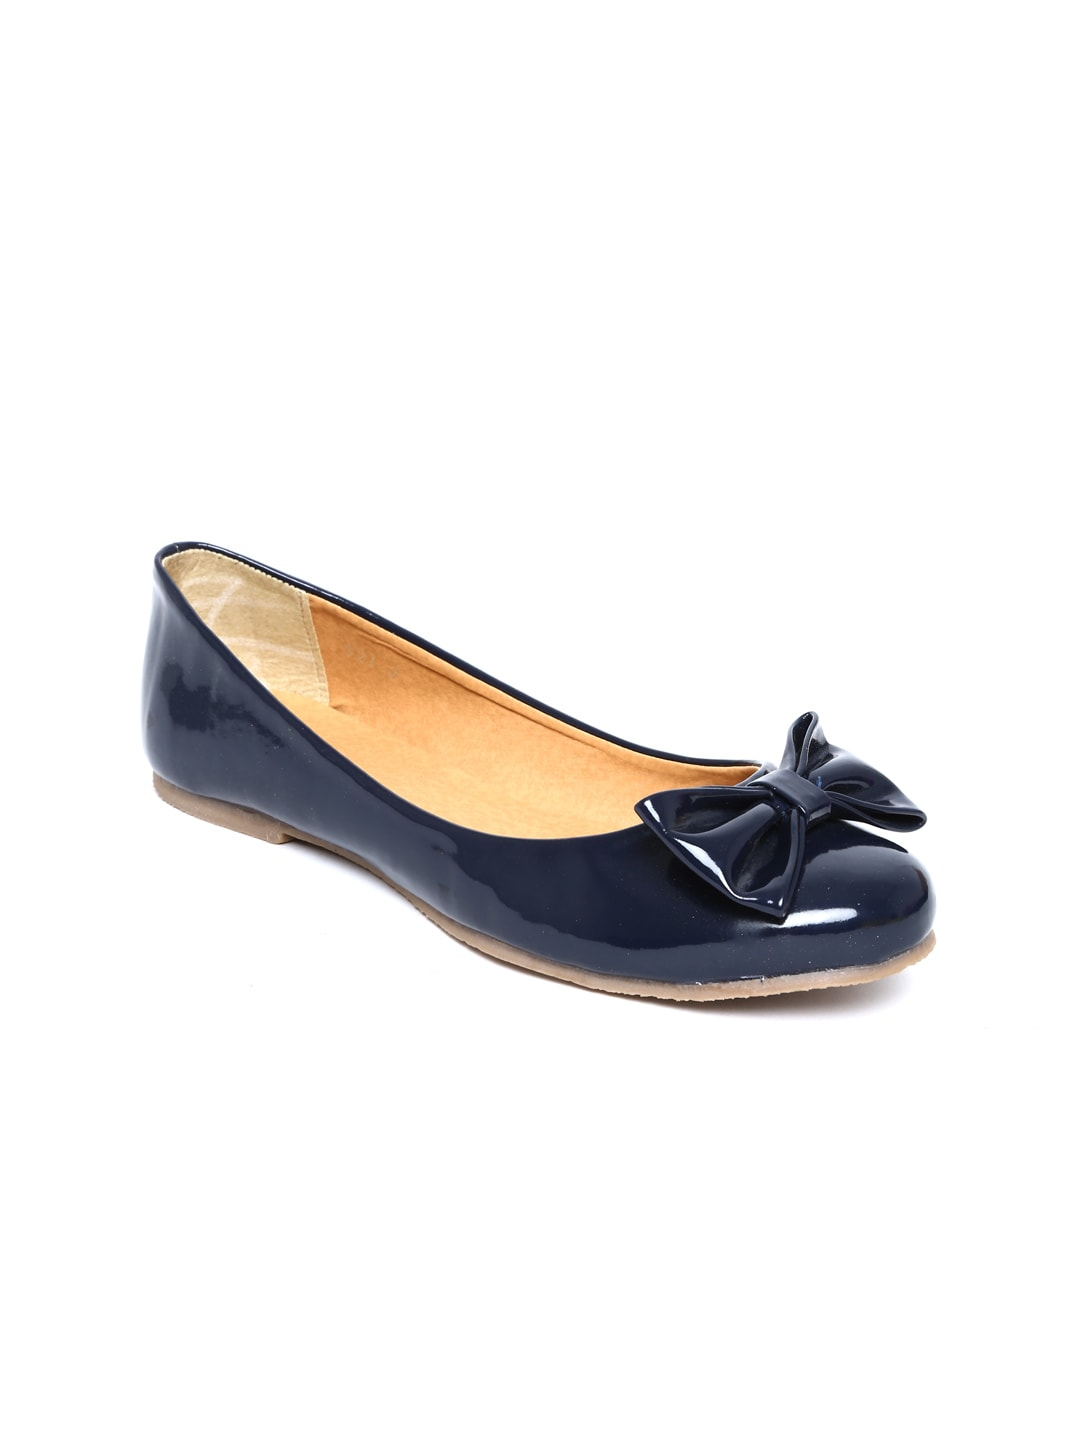 Zuicy Zuicy Women Navy Ballerinas (Blue)